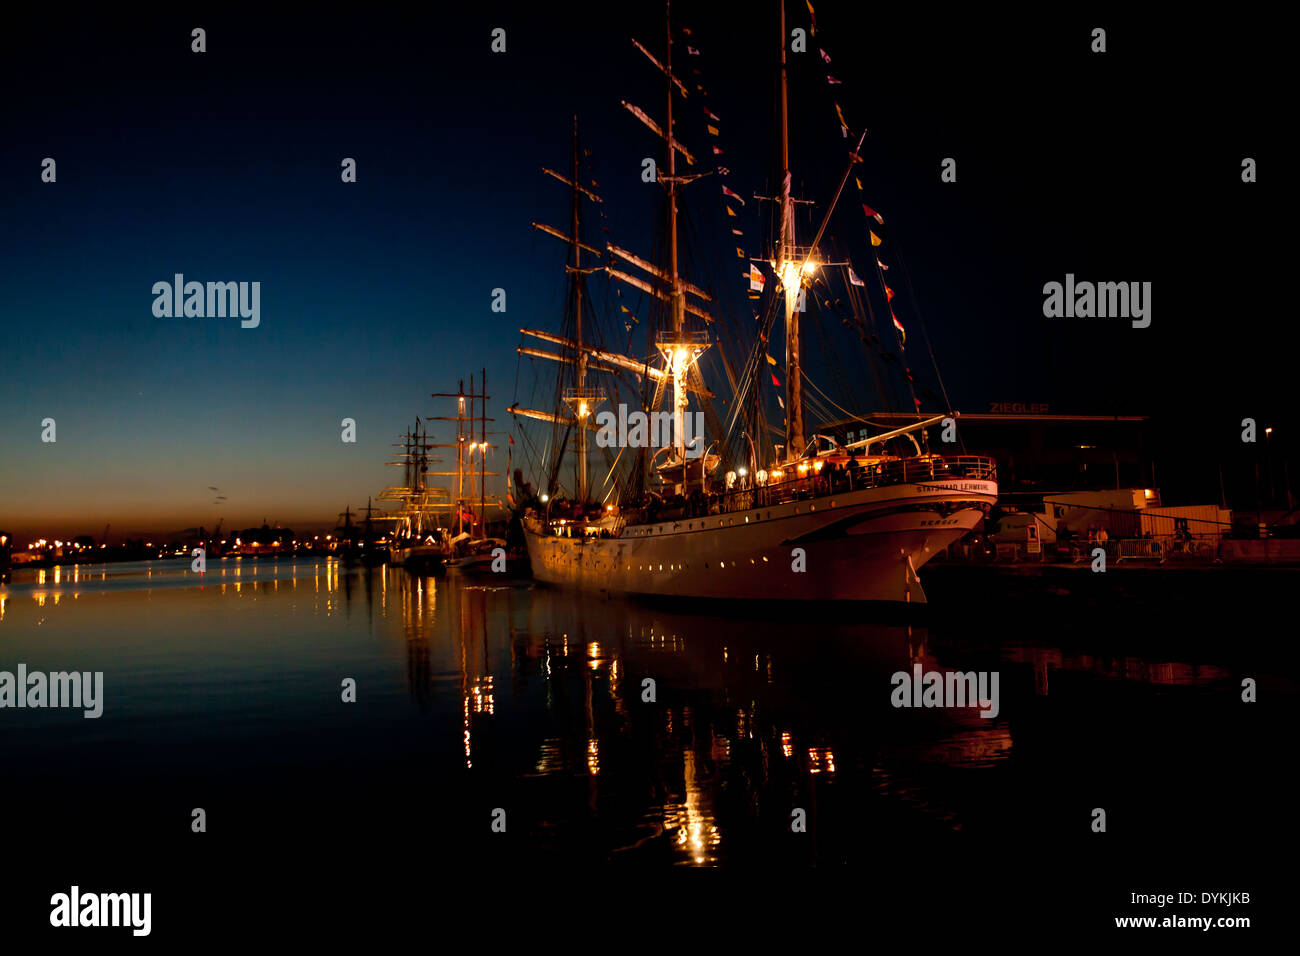 19th century sail ship from the Tall Ship's Race in Antwerp at night, beautifully lit. Stock Photo